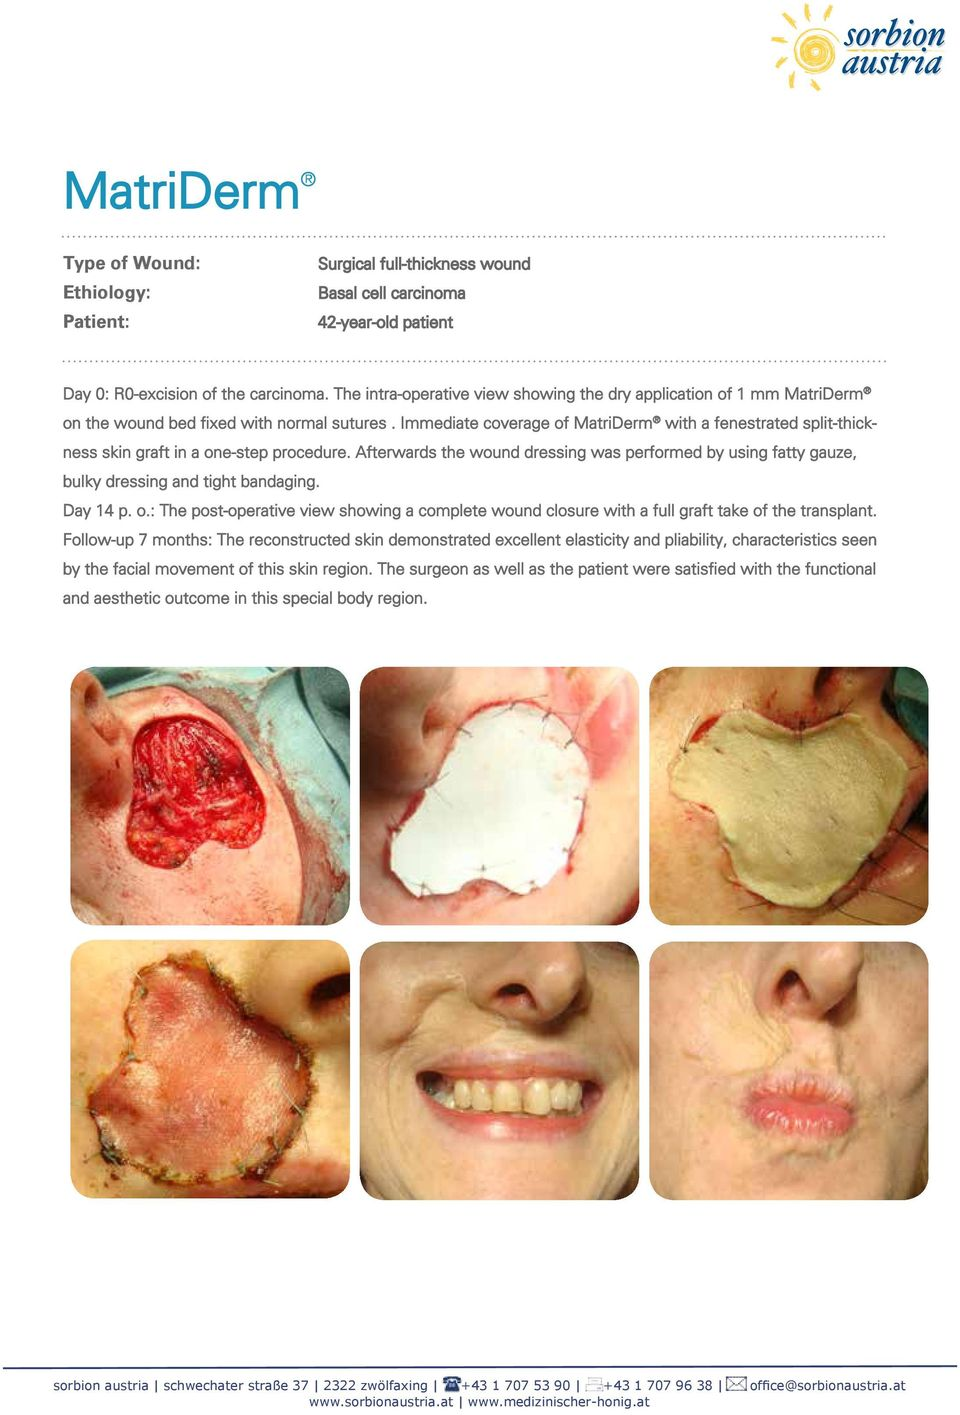 Immediate coverage of MatriDerm with a fenestrated split-thickness skin graft in a one-step procedure.